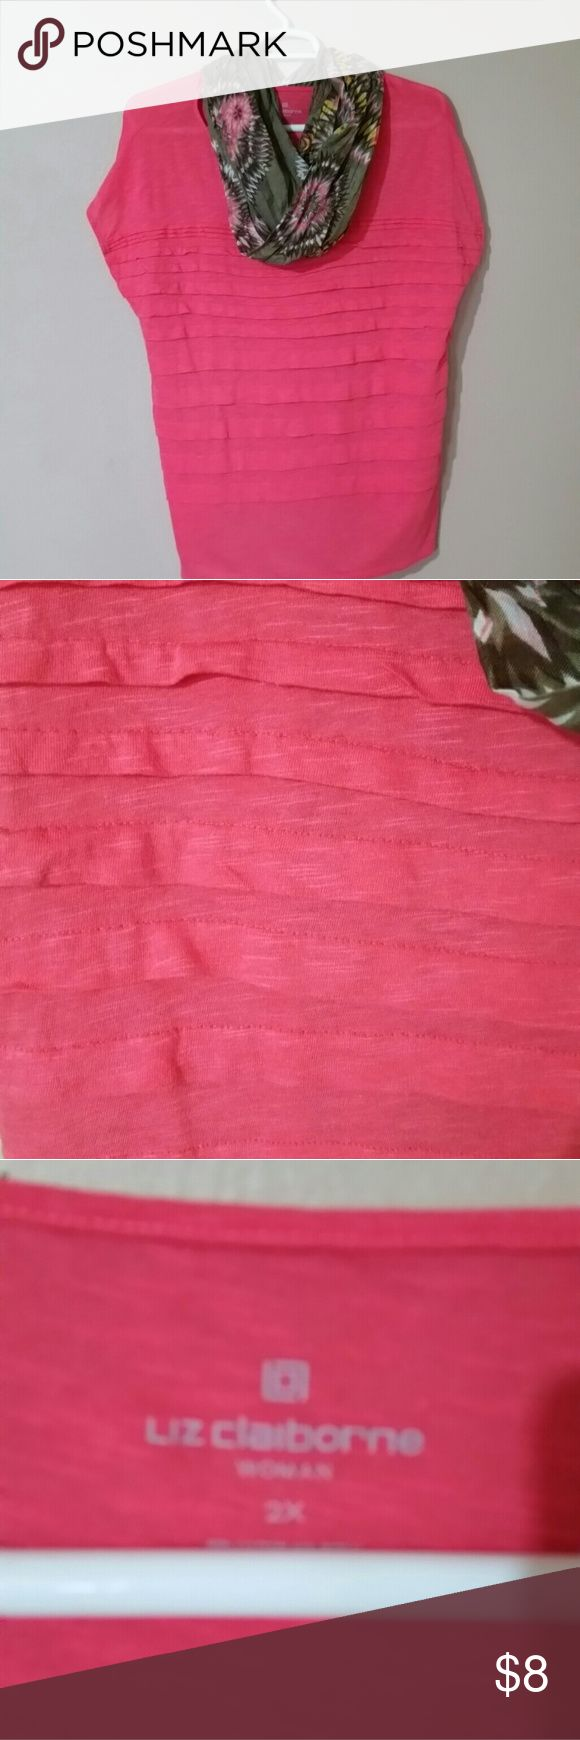 Coral top Great bright coral top with layers on the front and none on the back. Scarf not included. worn 1x. Liz Claiborne Tops